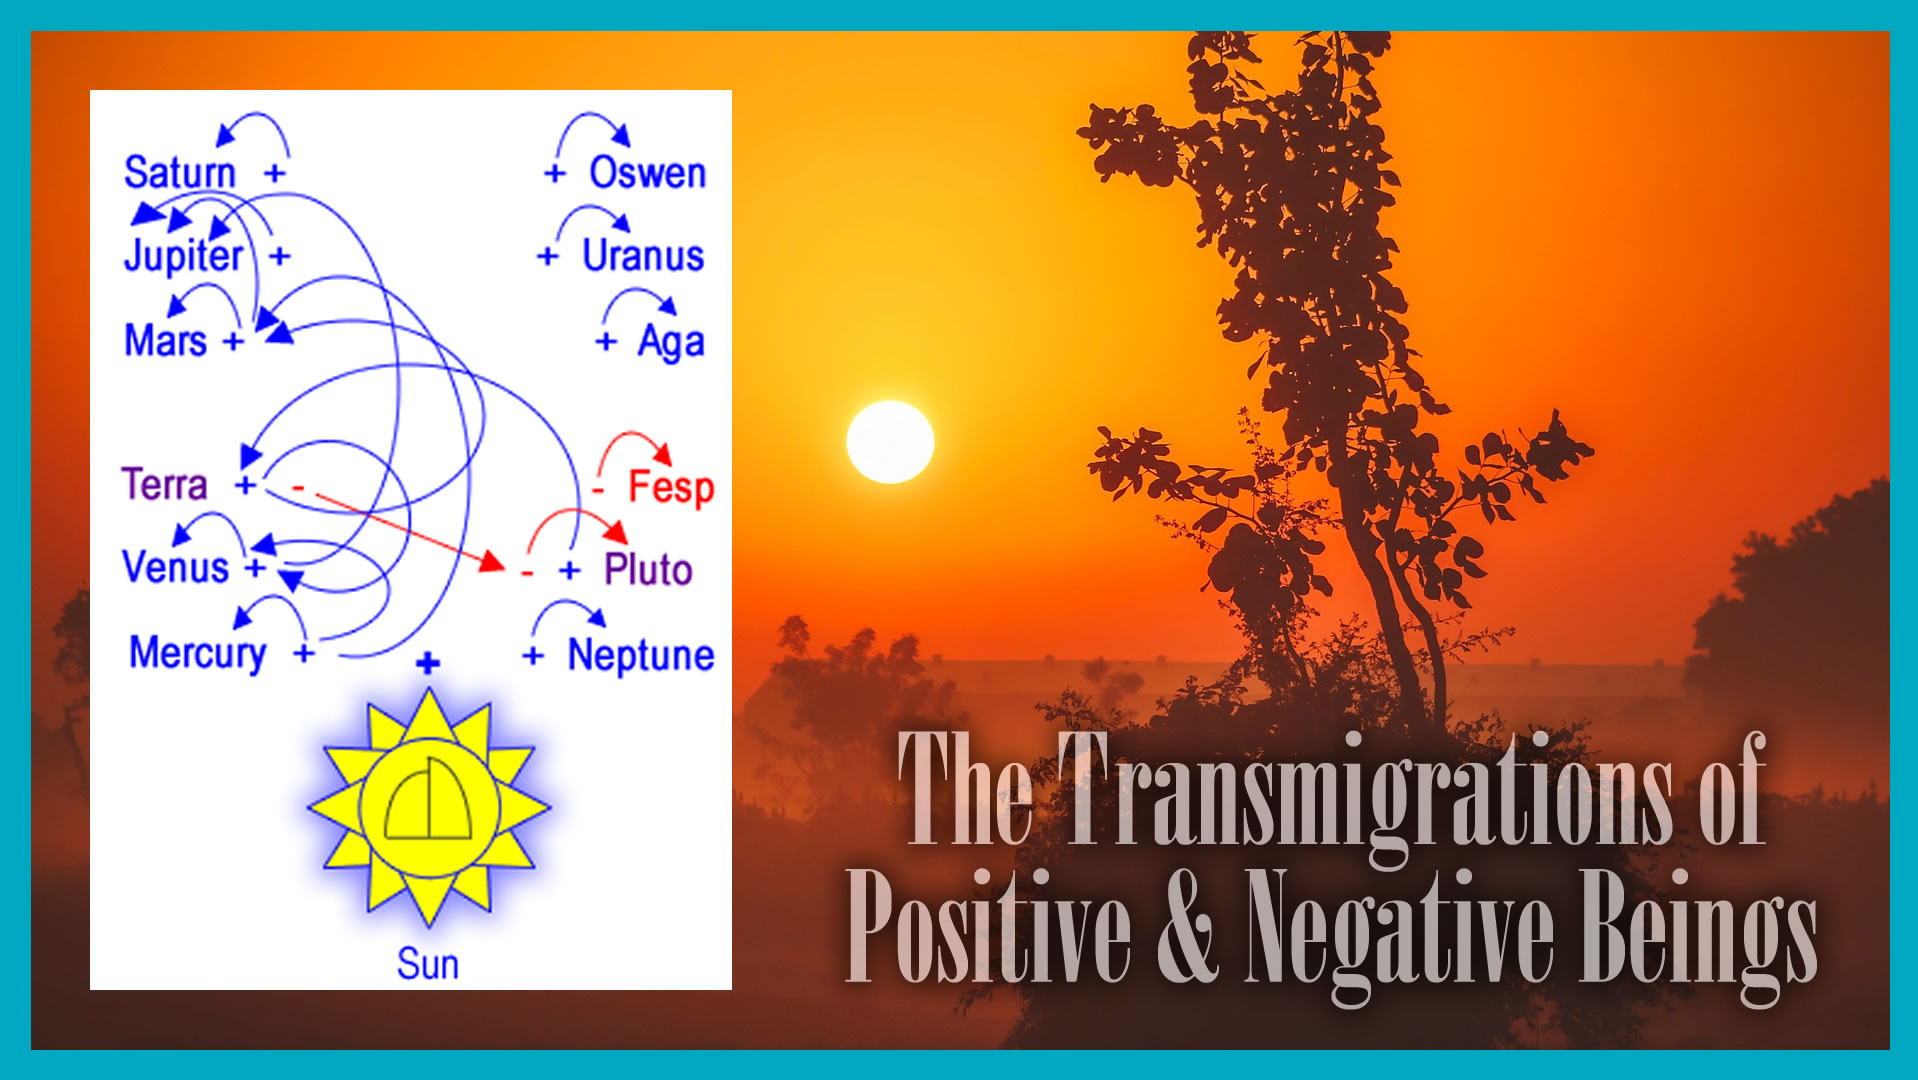 The Transmigration of Positive and Negative Beings